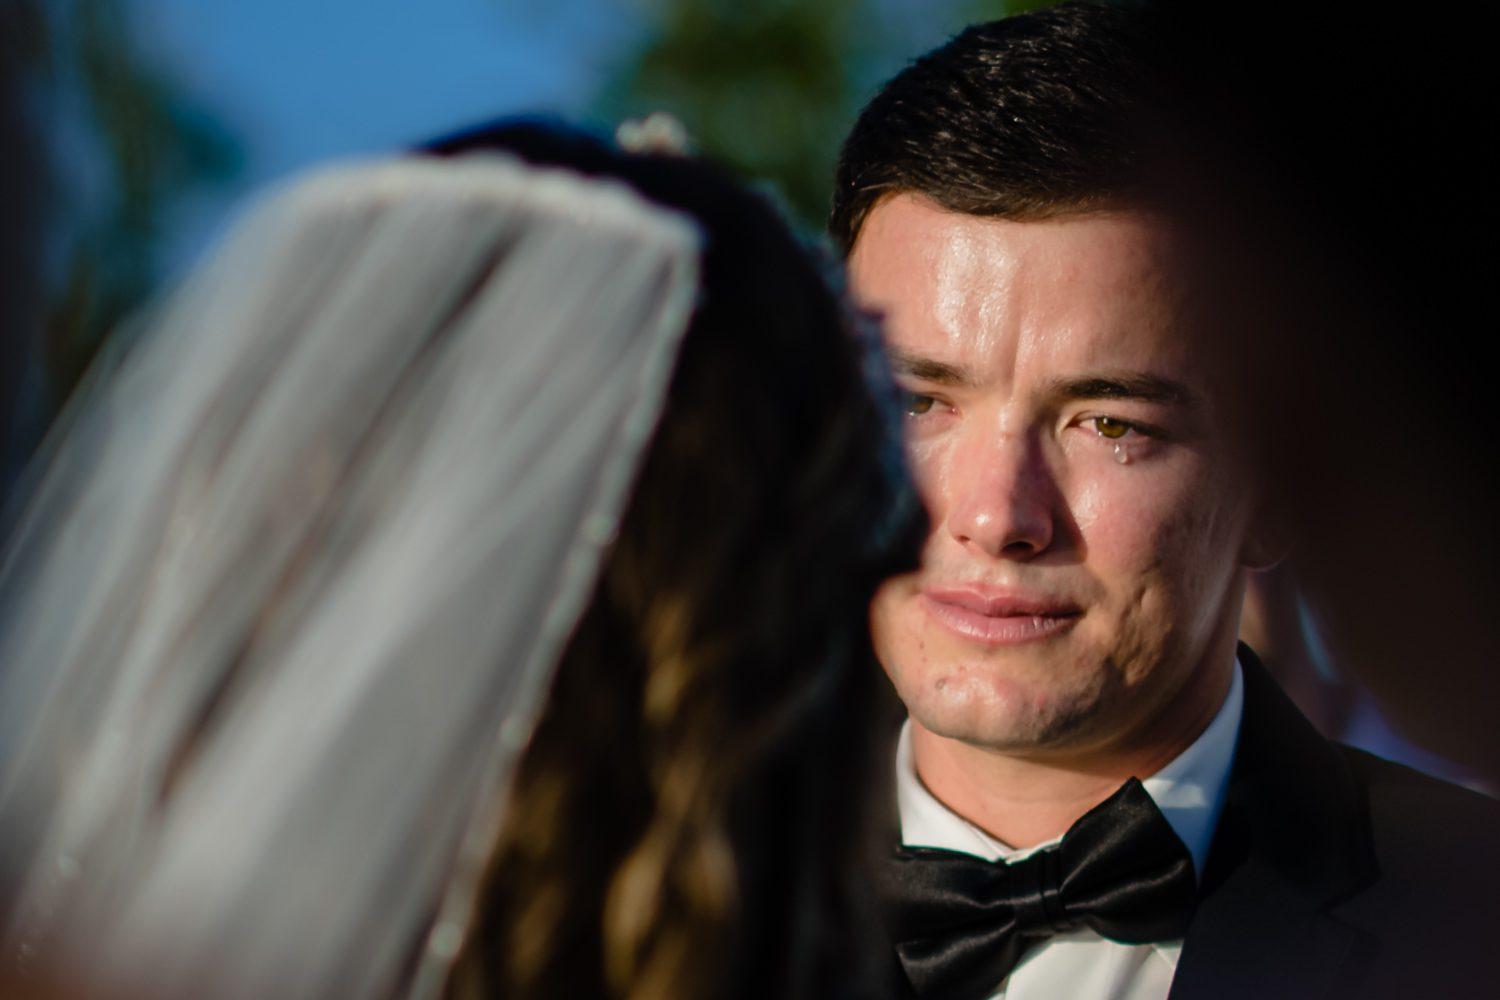 Groom crying as he looks at his bride before getting married in key west.